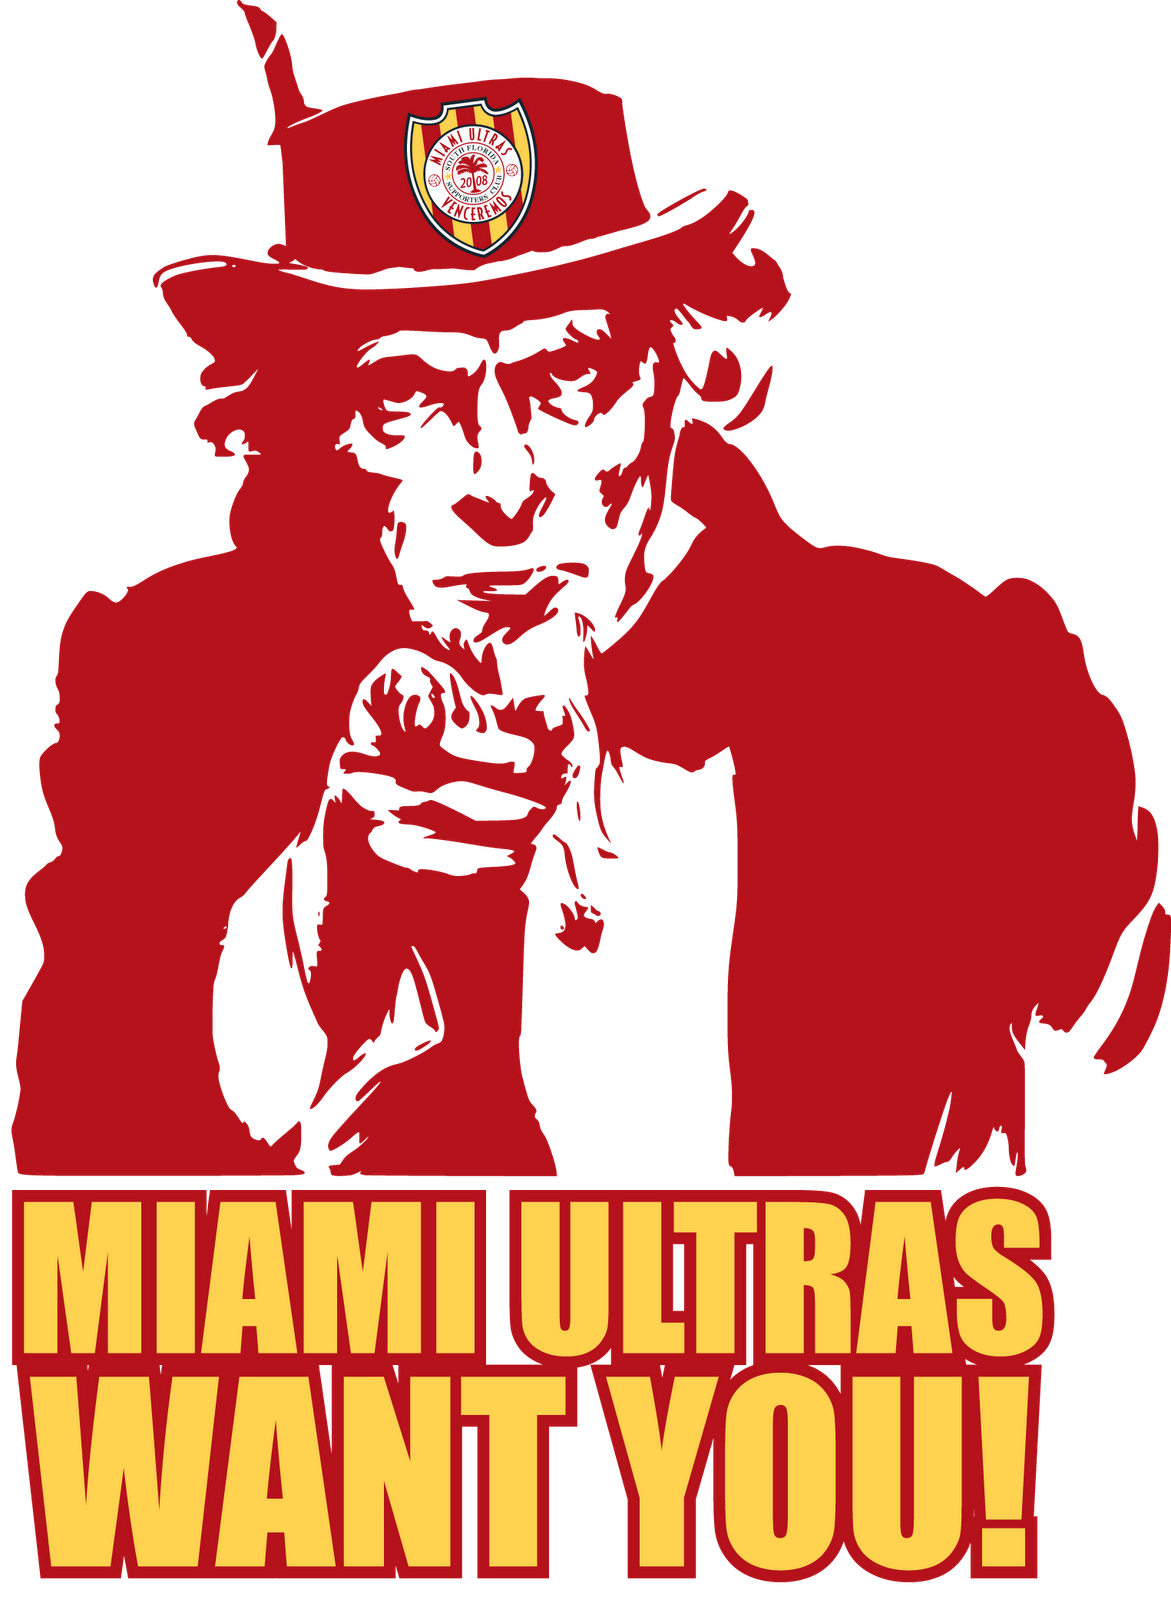 Join the ULTRAS!